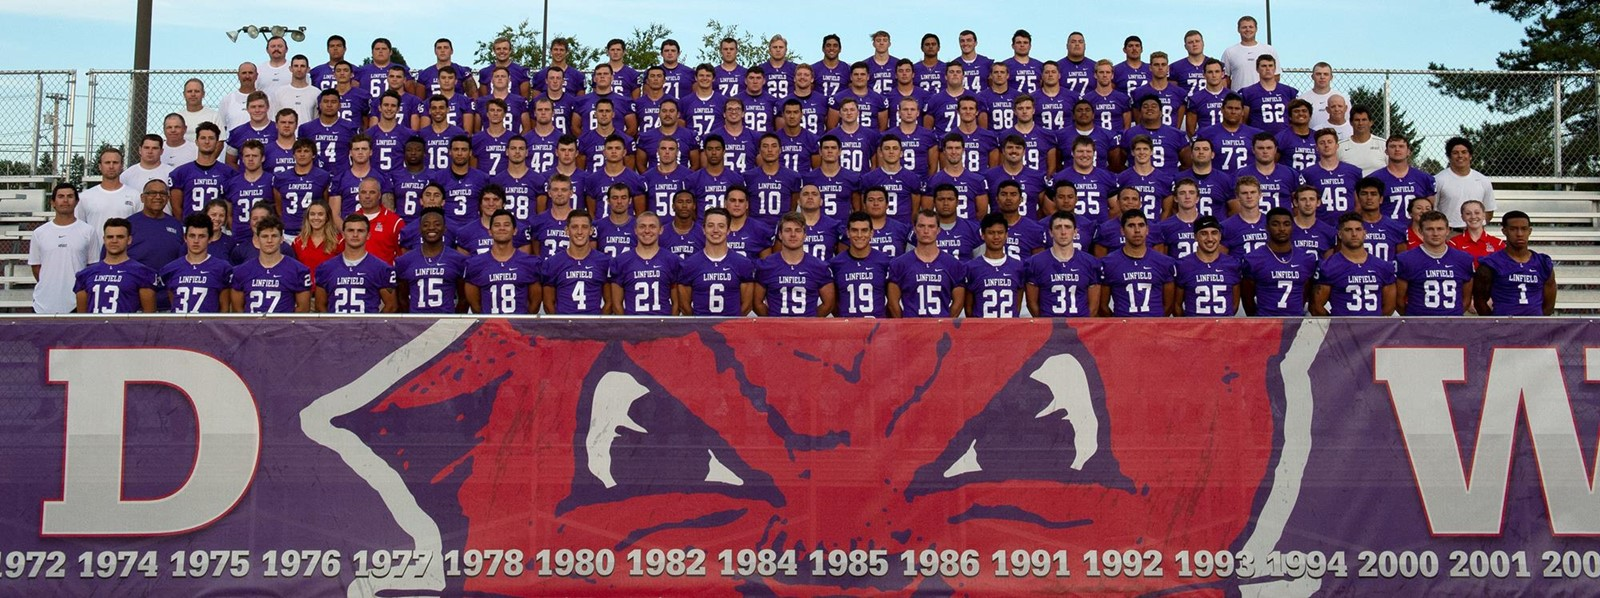 2018 Football Roster Linfield College Athletics